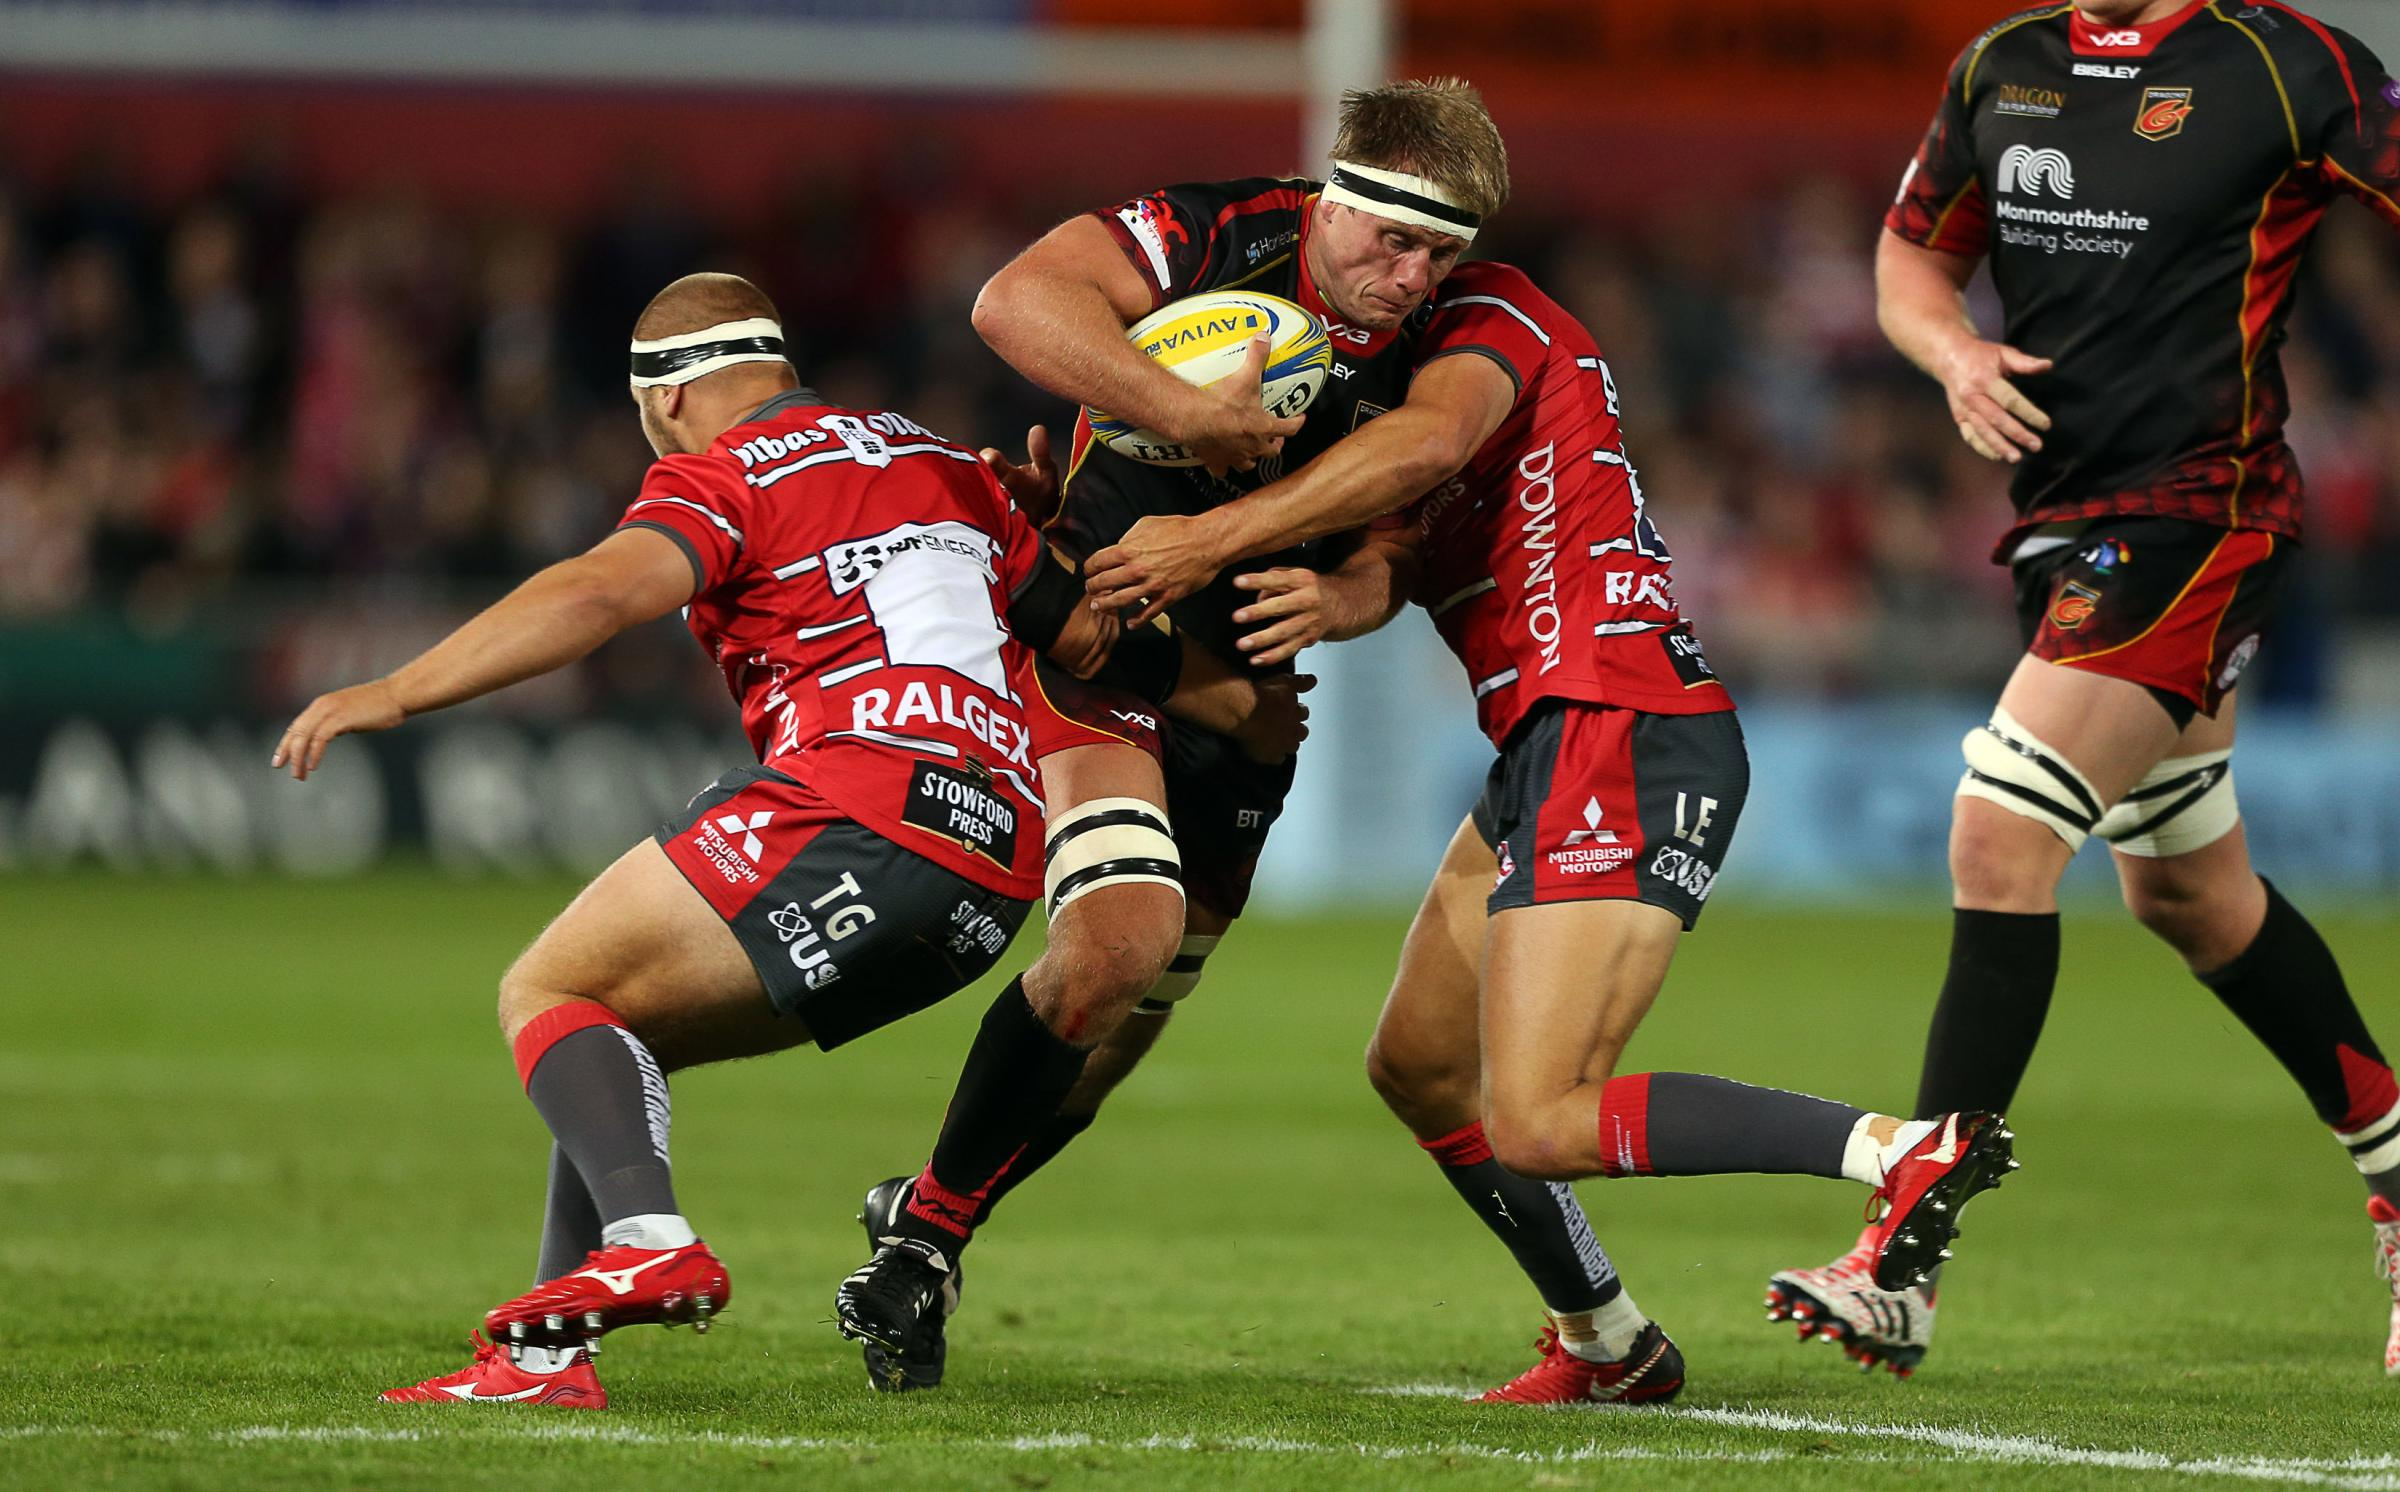 23.08.18 - Gloucester Rugby v Dragons - Pre Season Friendly - Nic Cudd of Dragons is tackled by Lloyd Evans of Gloucester..